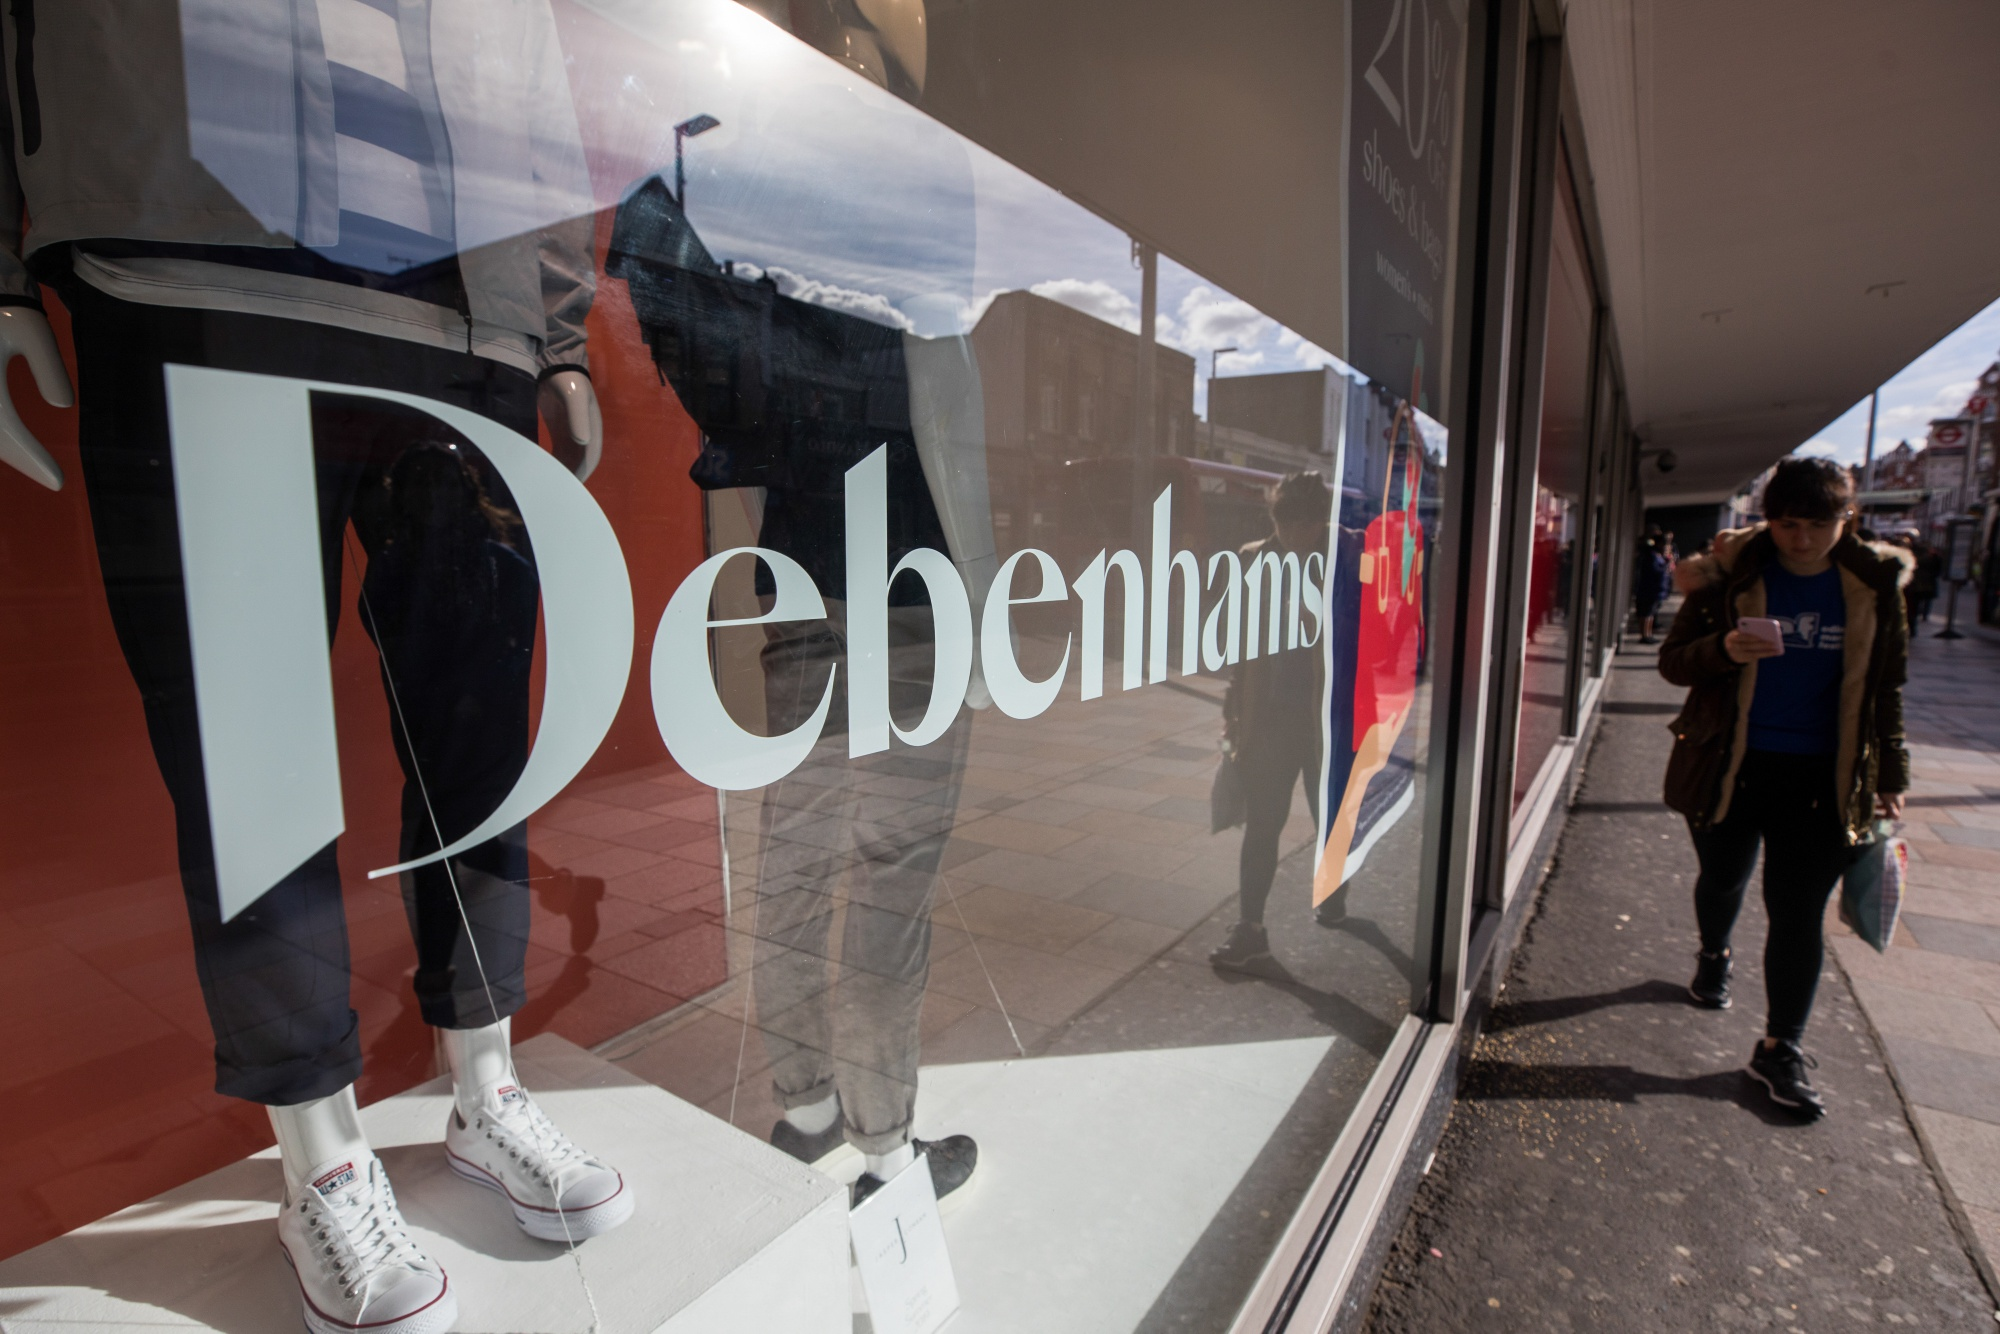 A pedestrian passes a Debenhams Plc department store in London, U.K., on Monday, March 11, 2019.